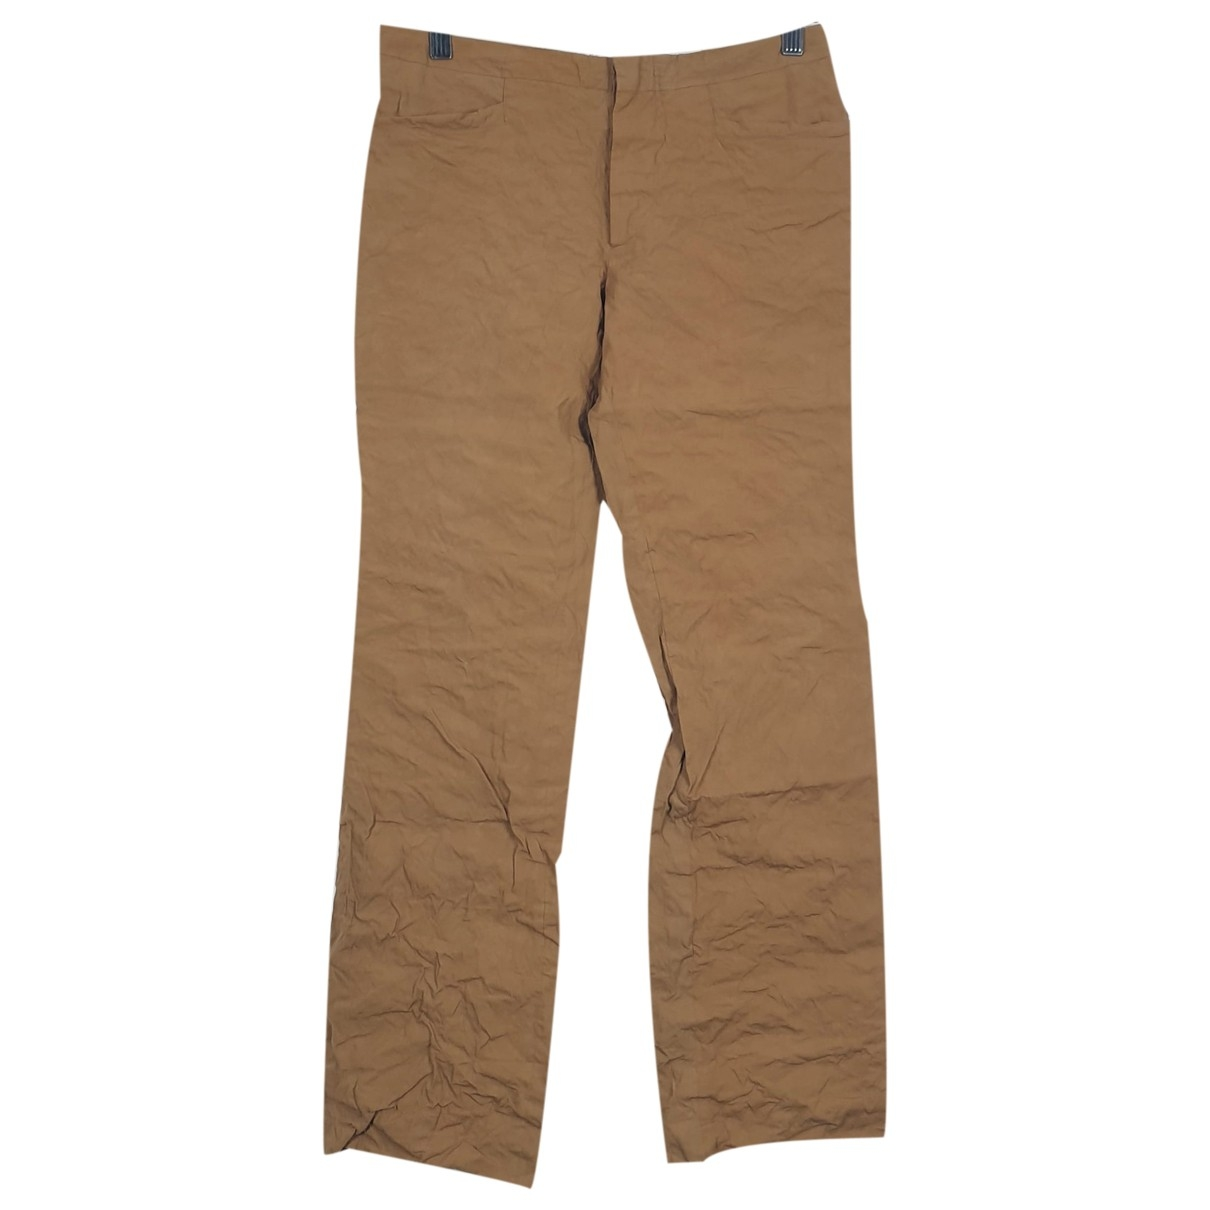 Romeo Gigli \N Camel Cotton Trousers for Women 40 IT